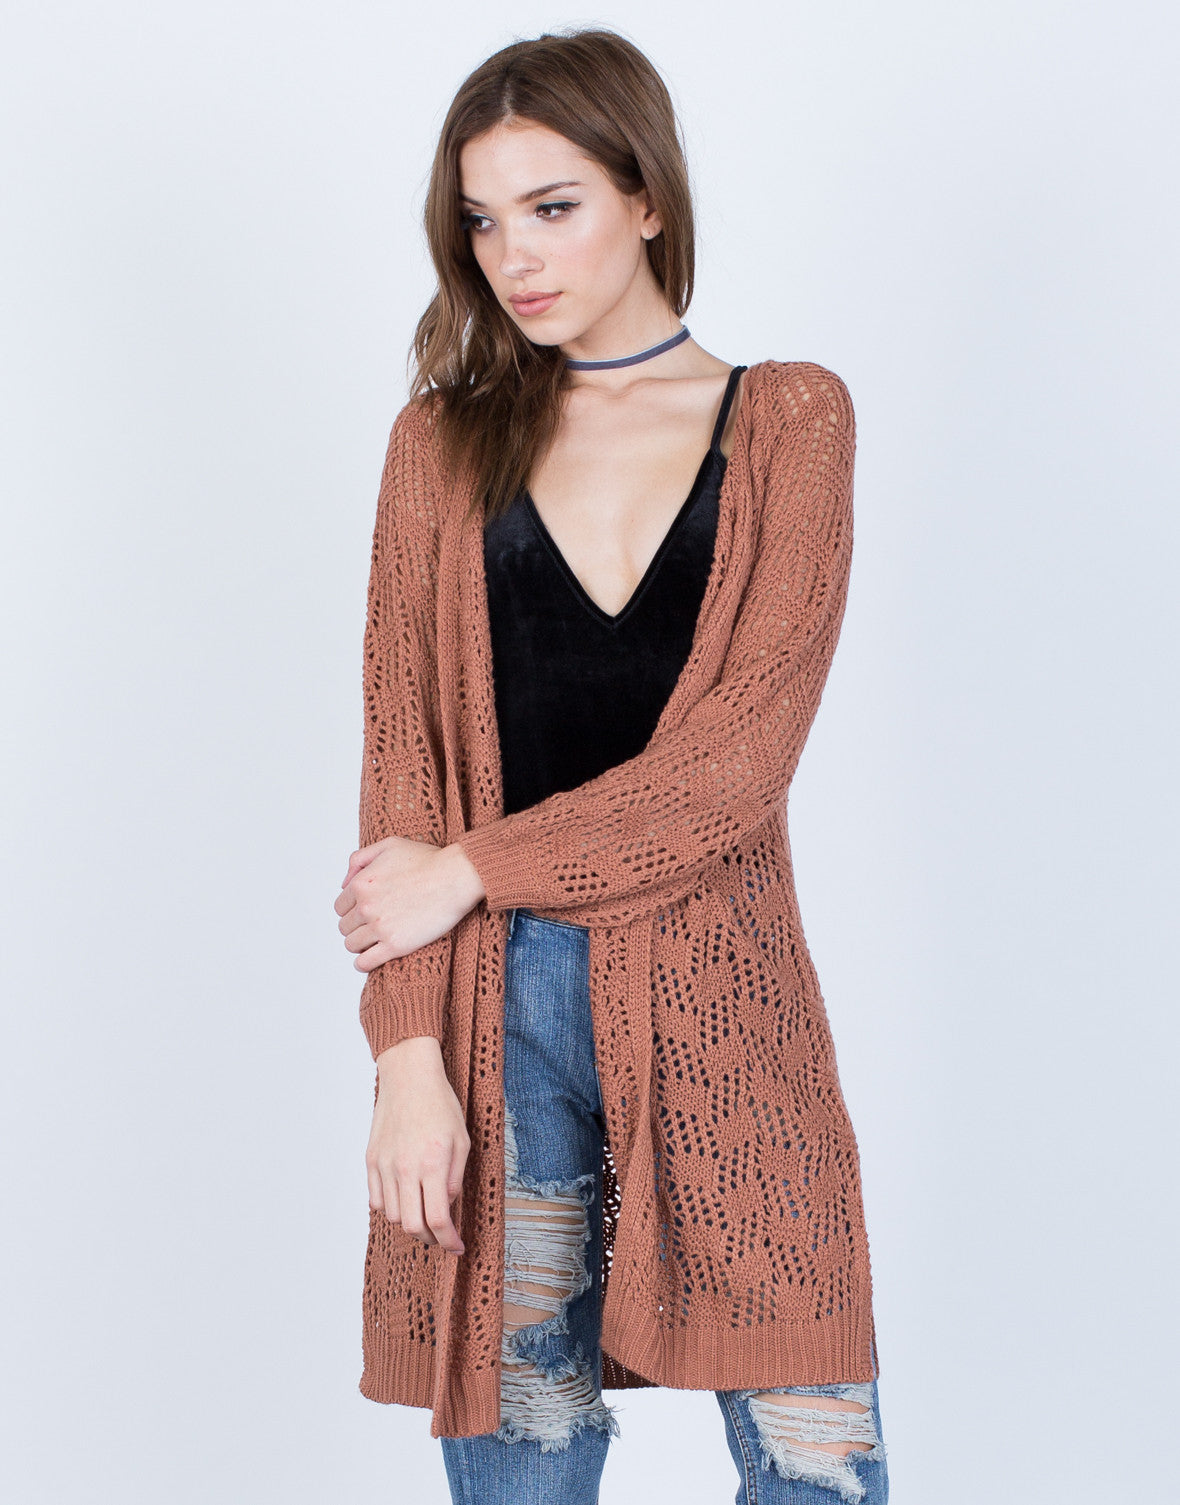 Relaxed Knit Cardigan - Lightweight Knitted Cardigan - Flowy ...